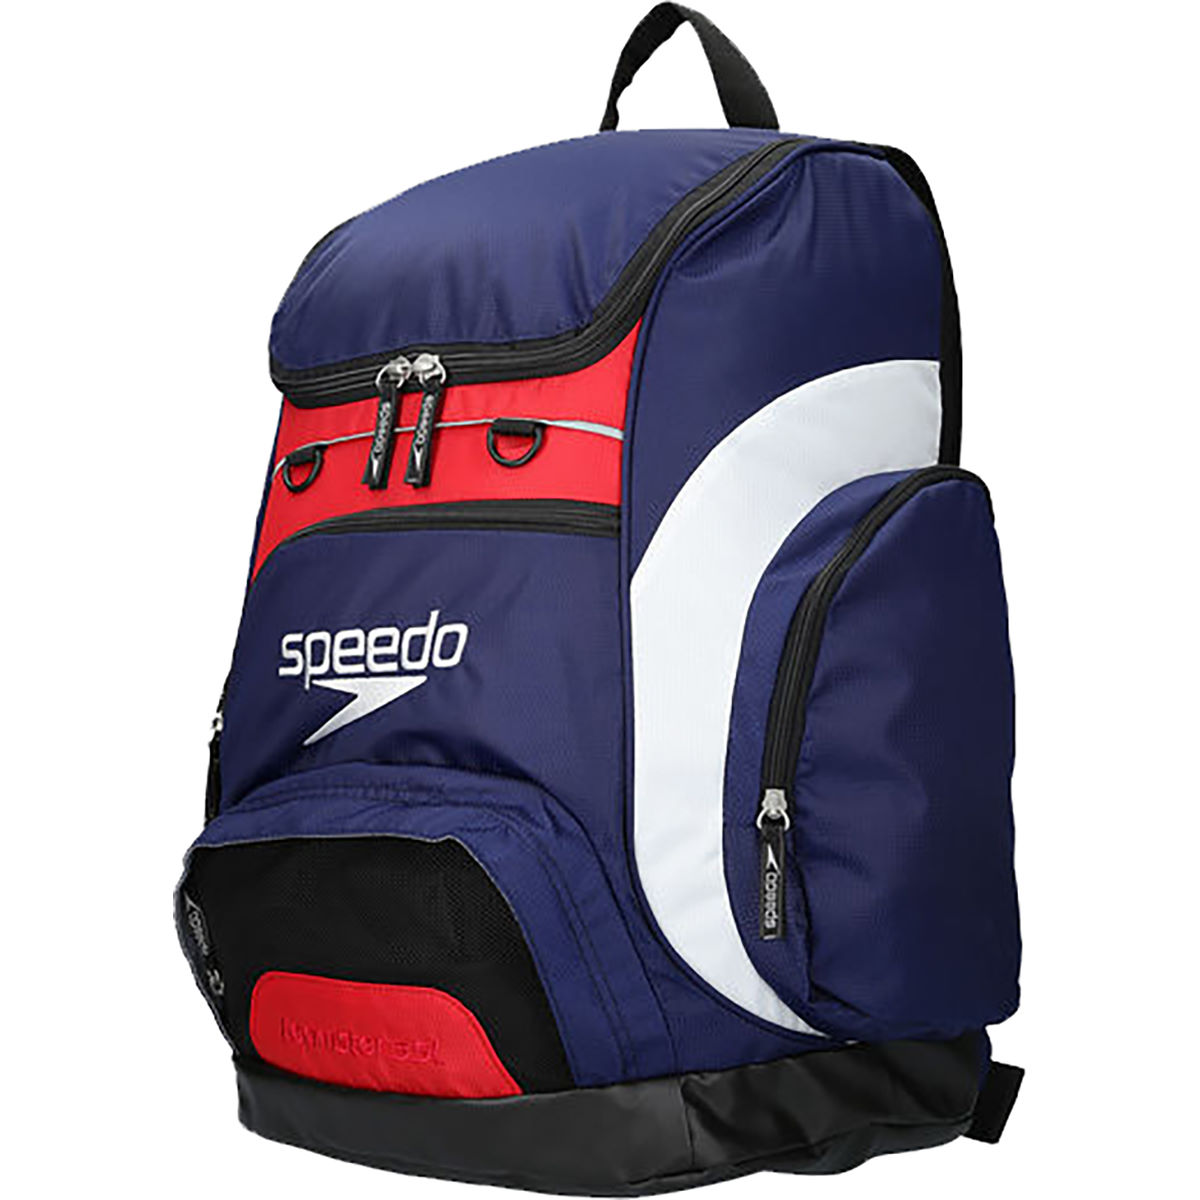 Sac à dos Speedo Teamster (35 litres) - One Size Navy / Red / White